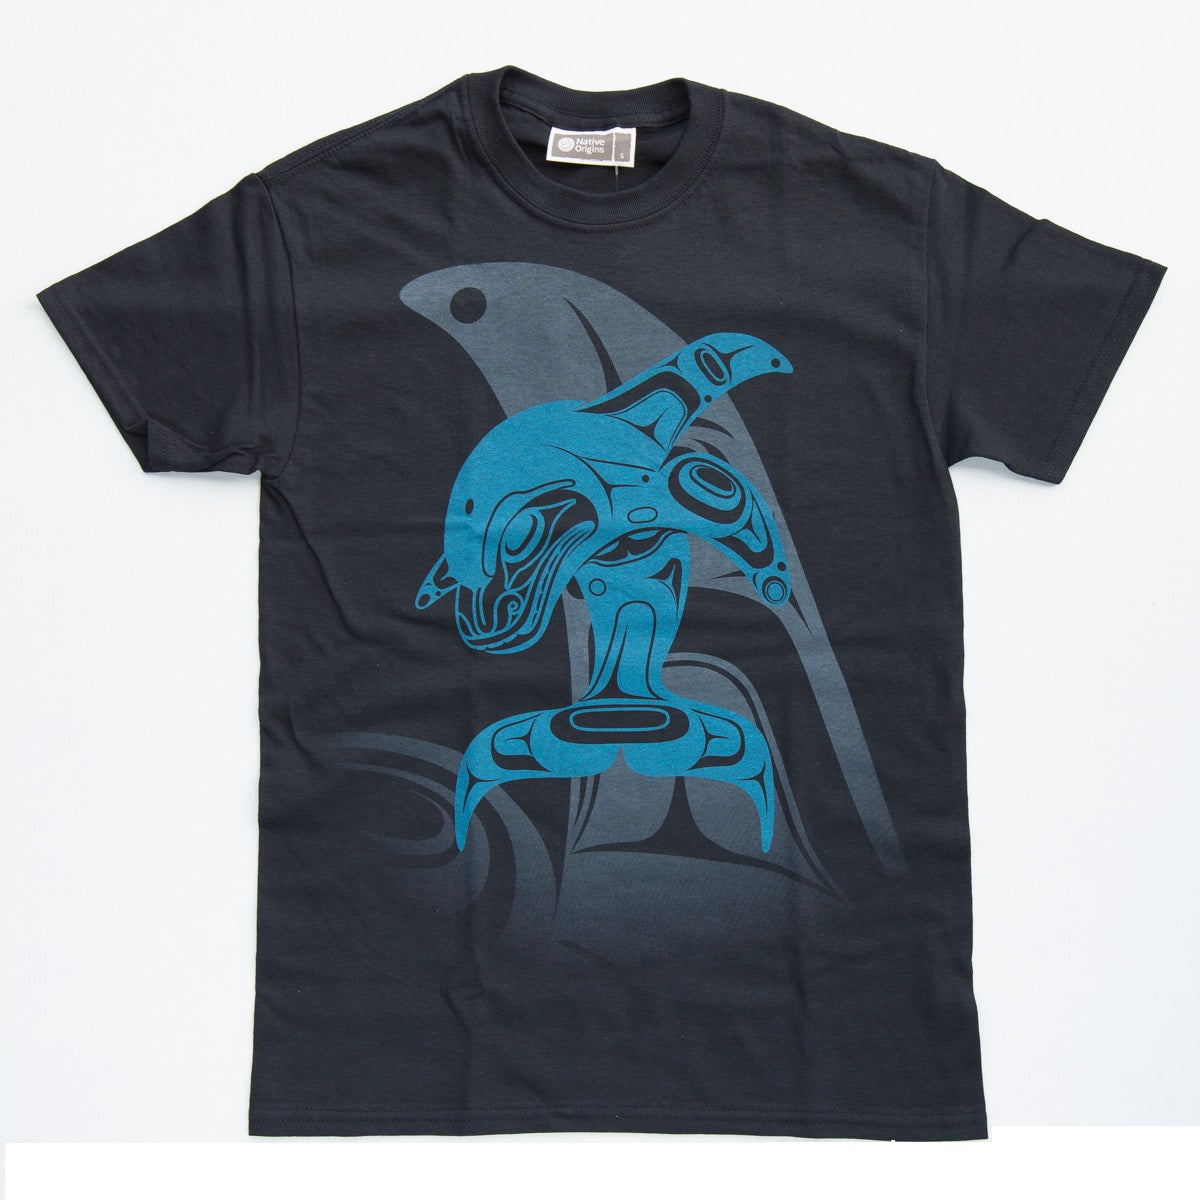 t-shirt whale tradition marcel russ balck blue perfect gift unique gift